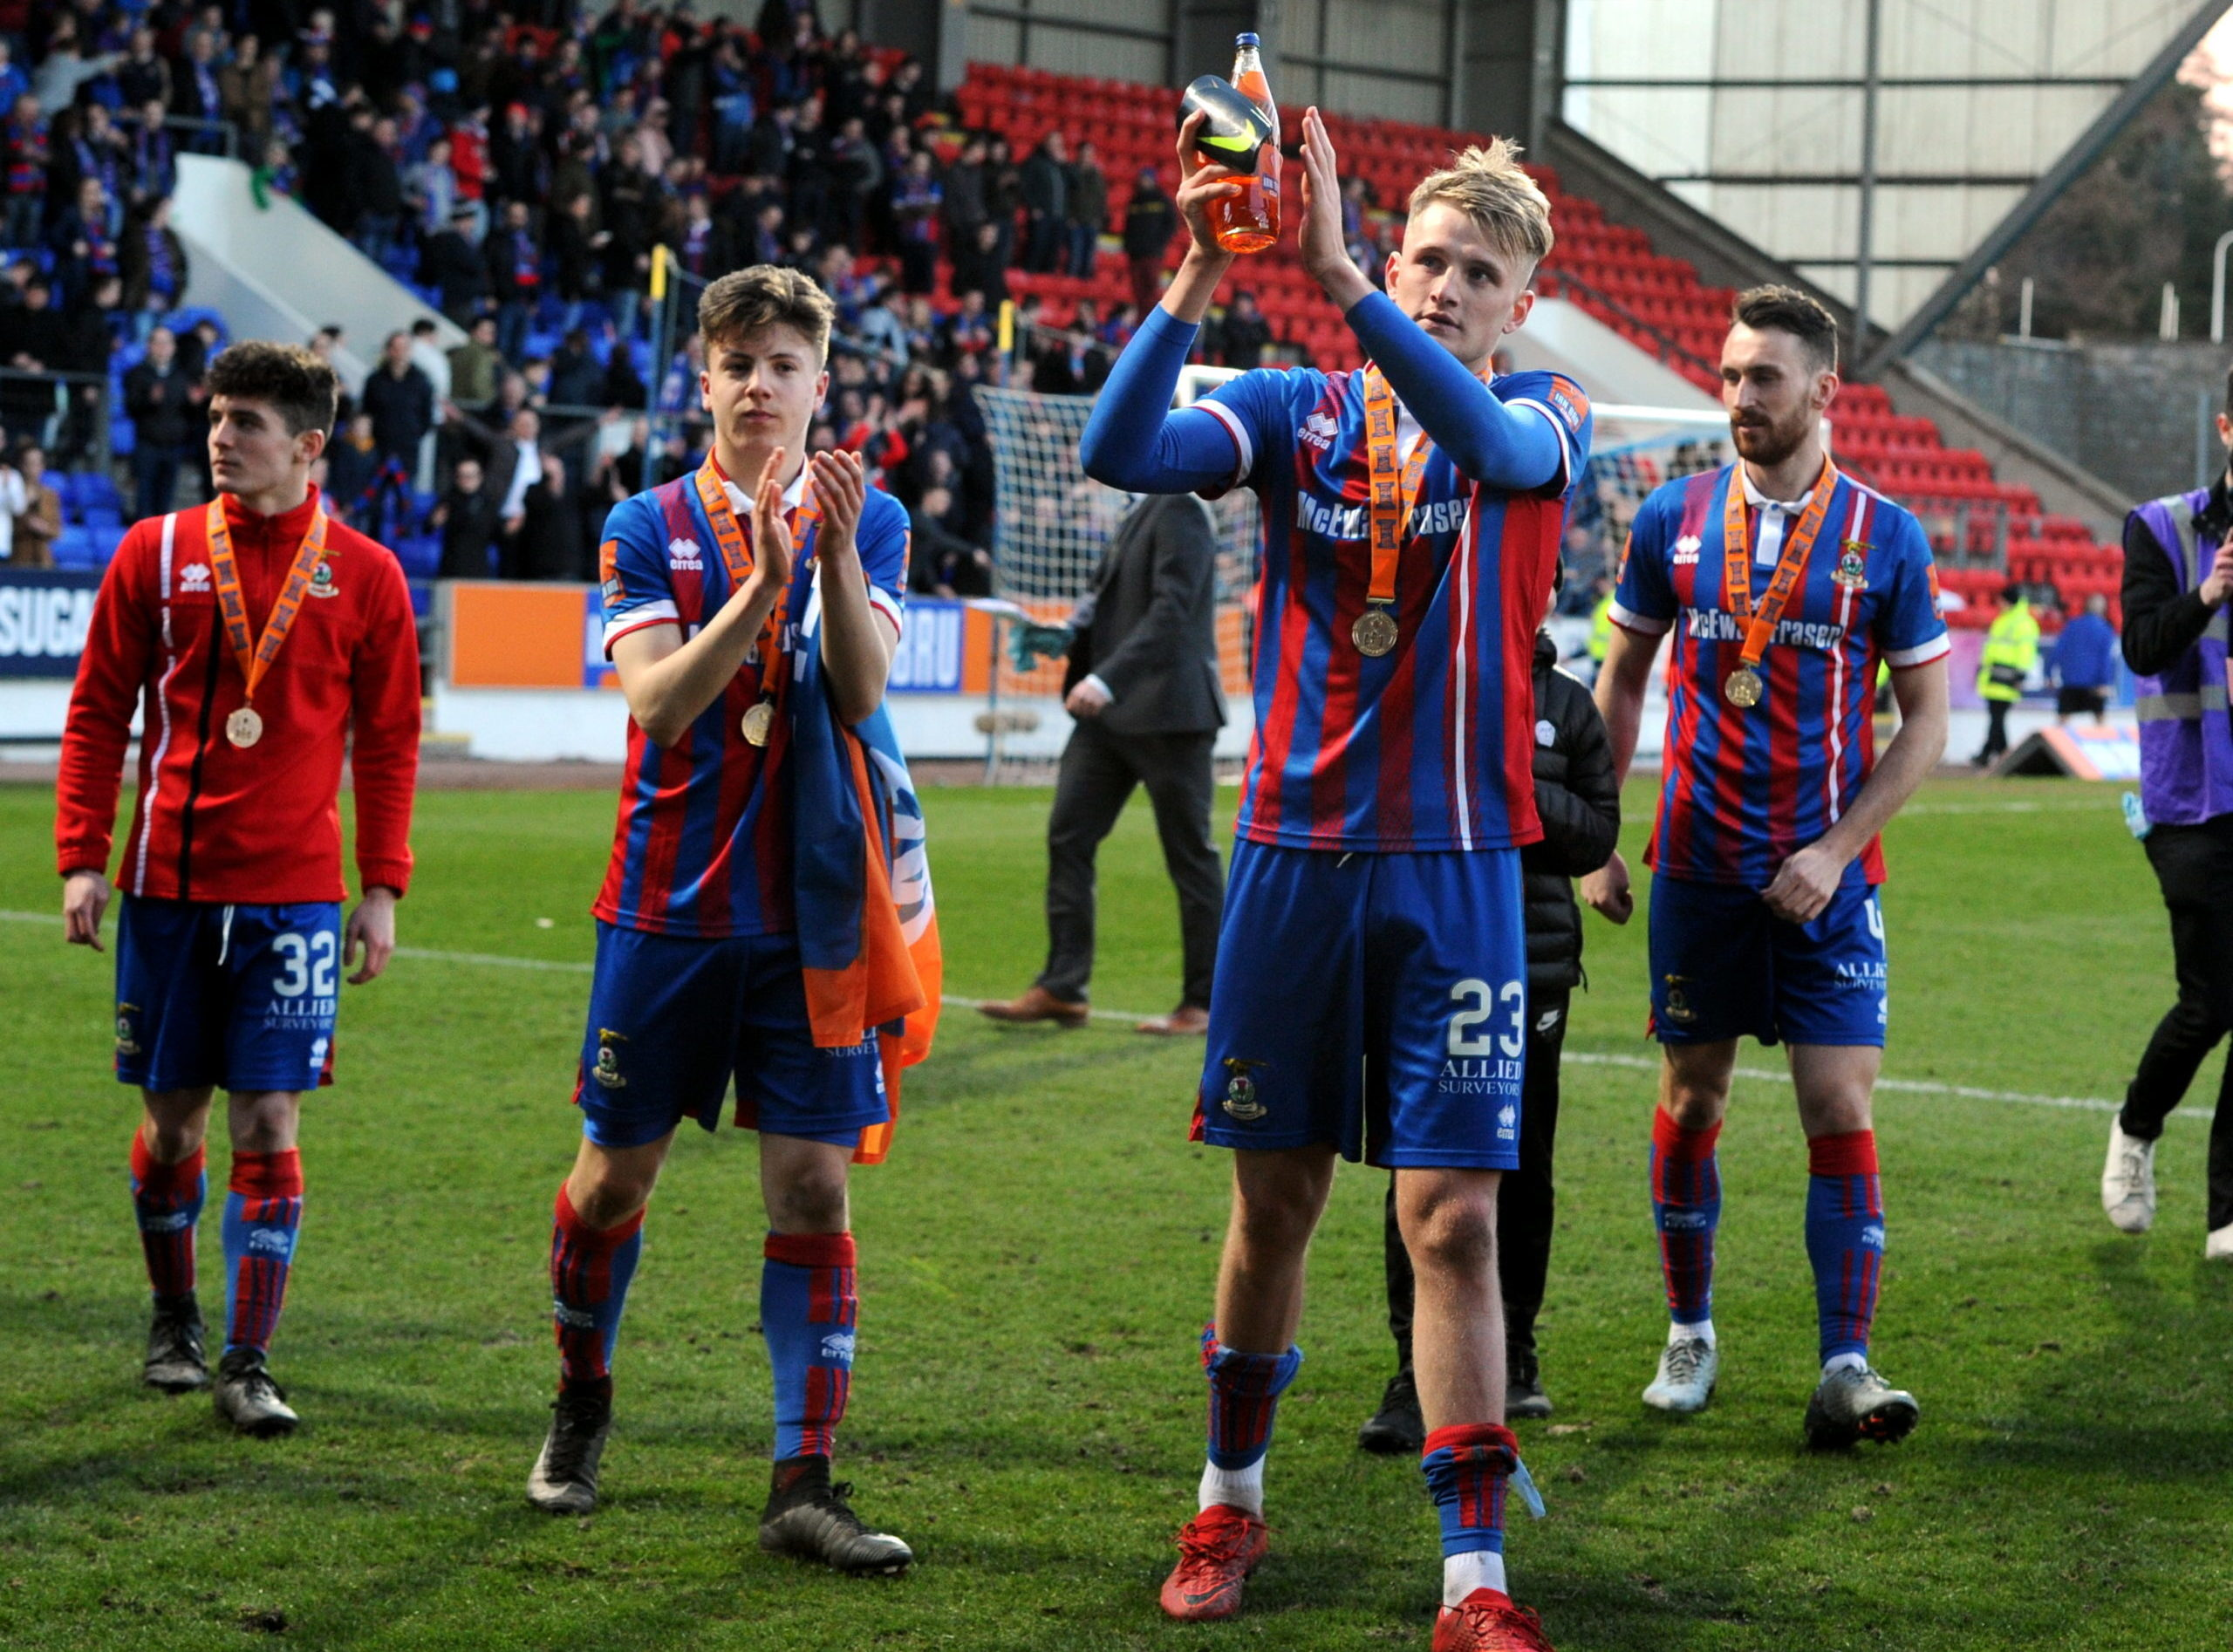 Daniel MacKay celebrates the Challenge Cup win with Coll Donaldson.